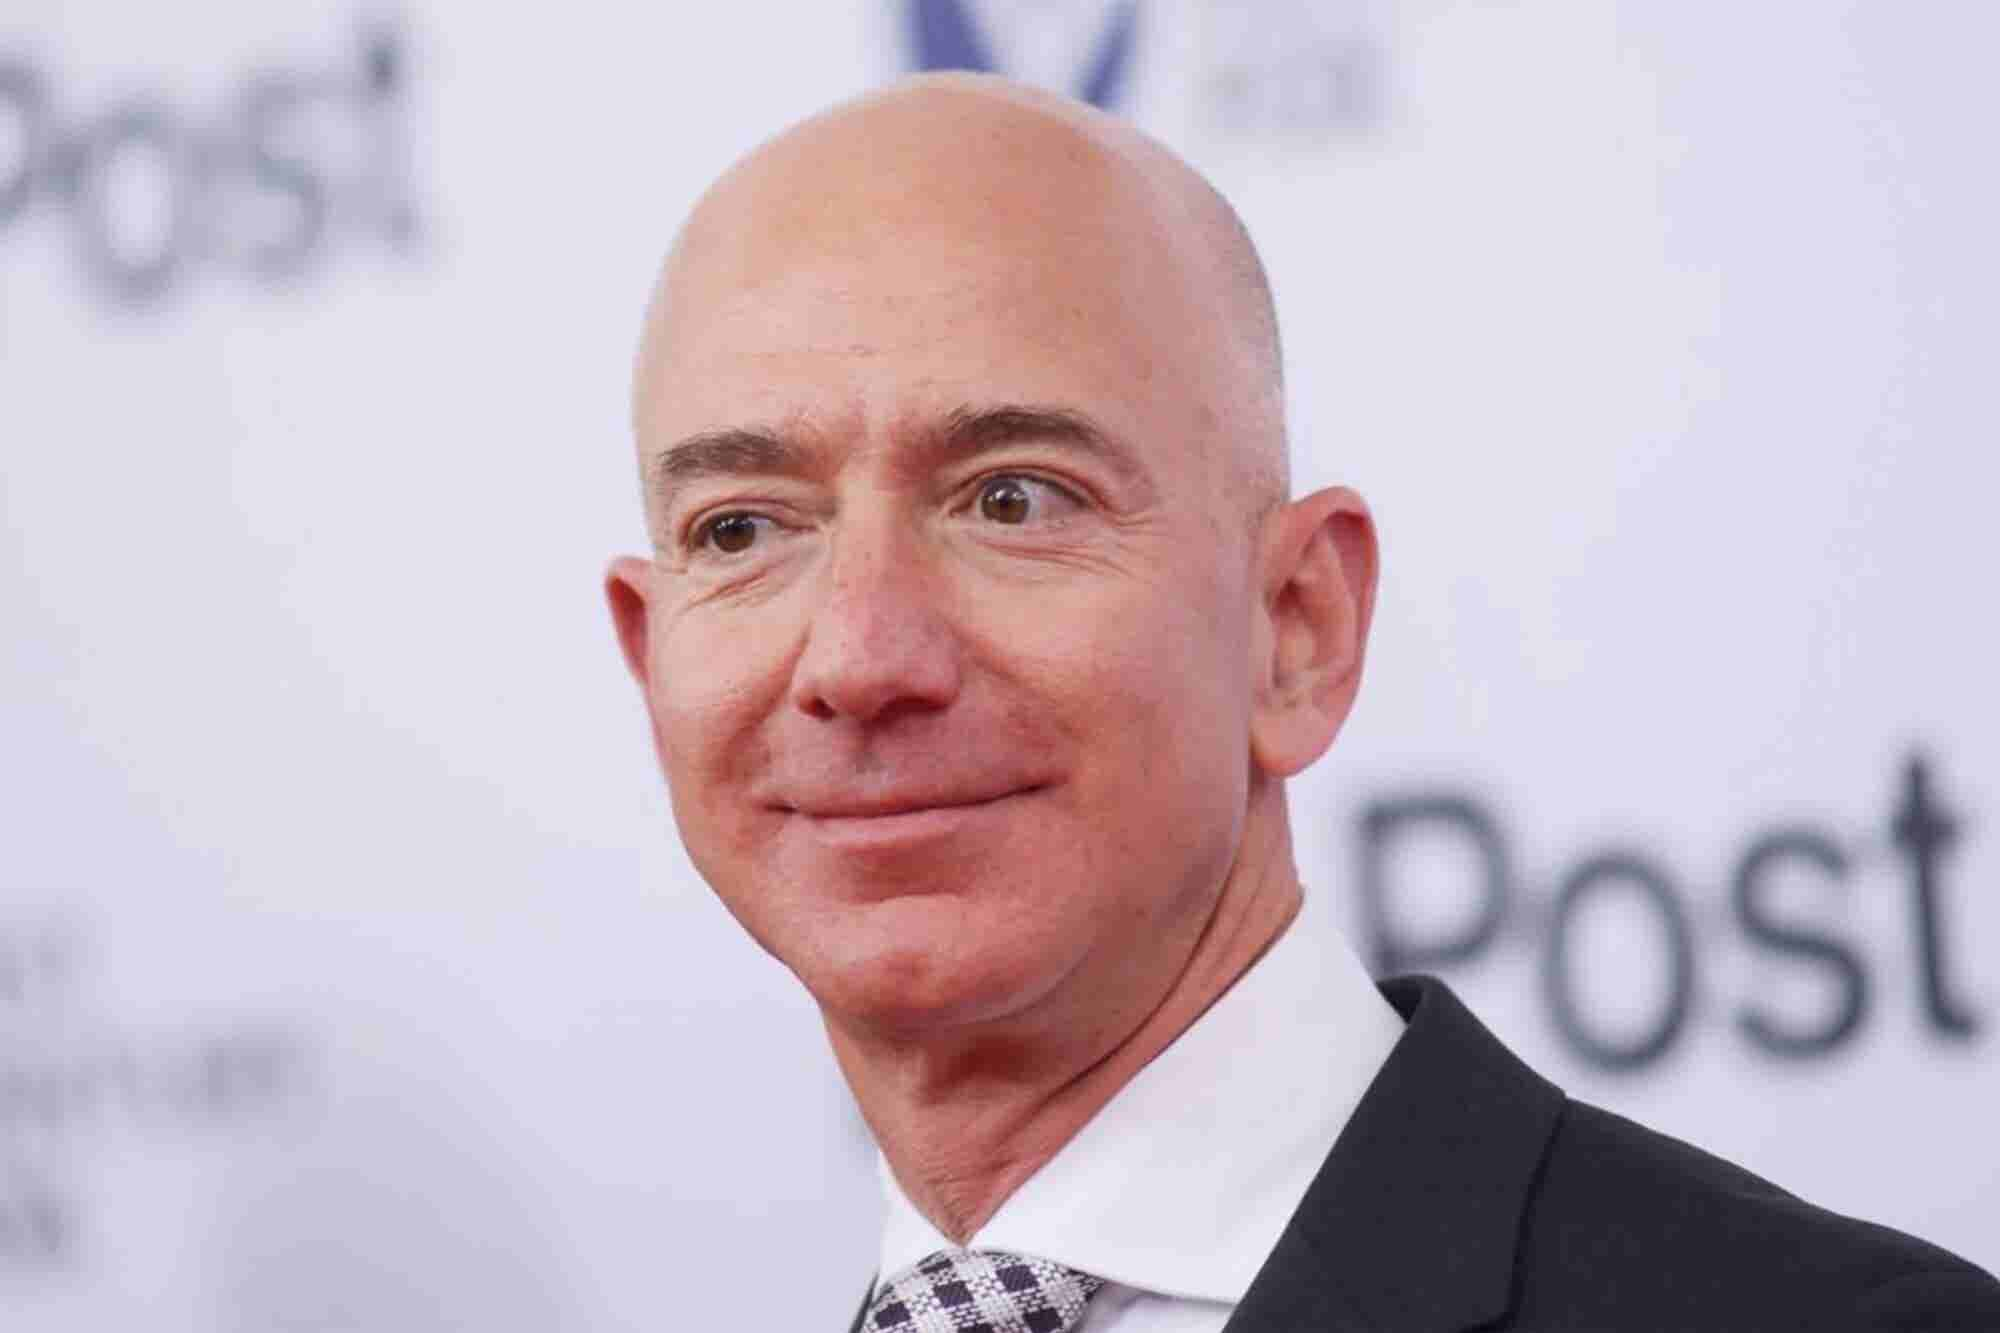 Jeff Bezos' Most Outrageous Business Failures